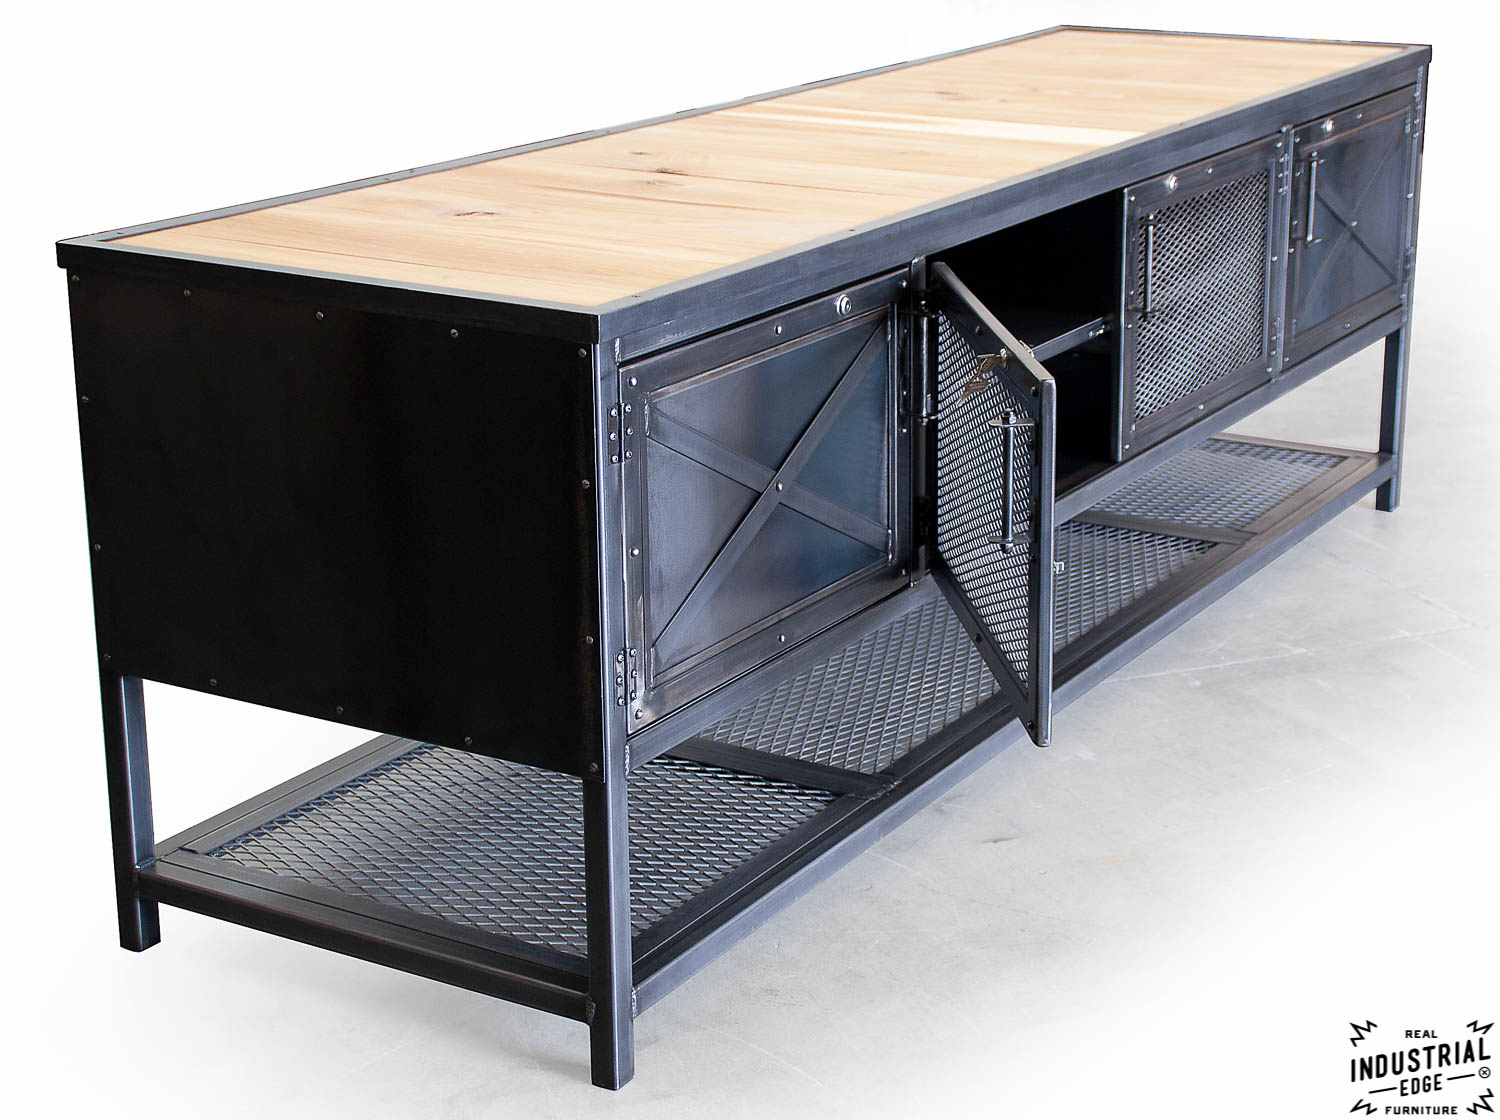 Custom Industrial Kitchen Island Reclaimed Wood Steel Real Industrial Edge Furniture